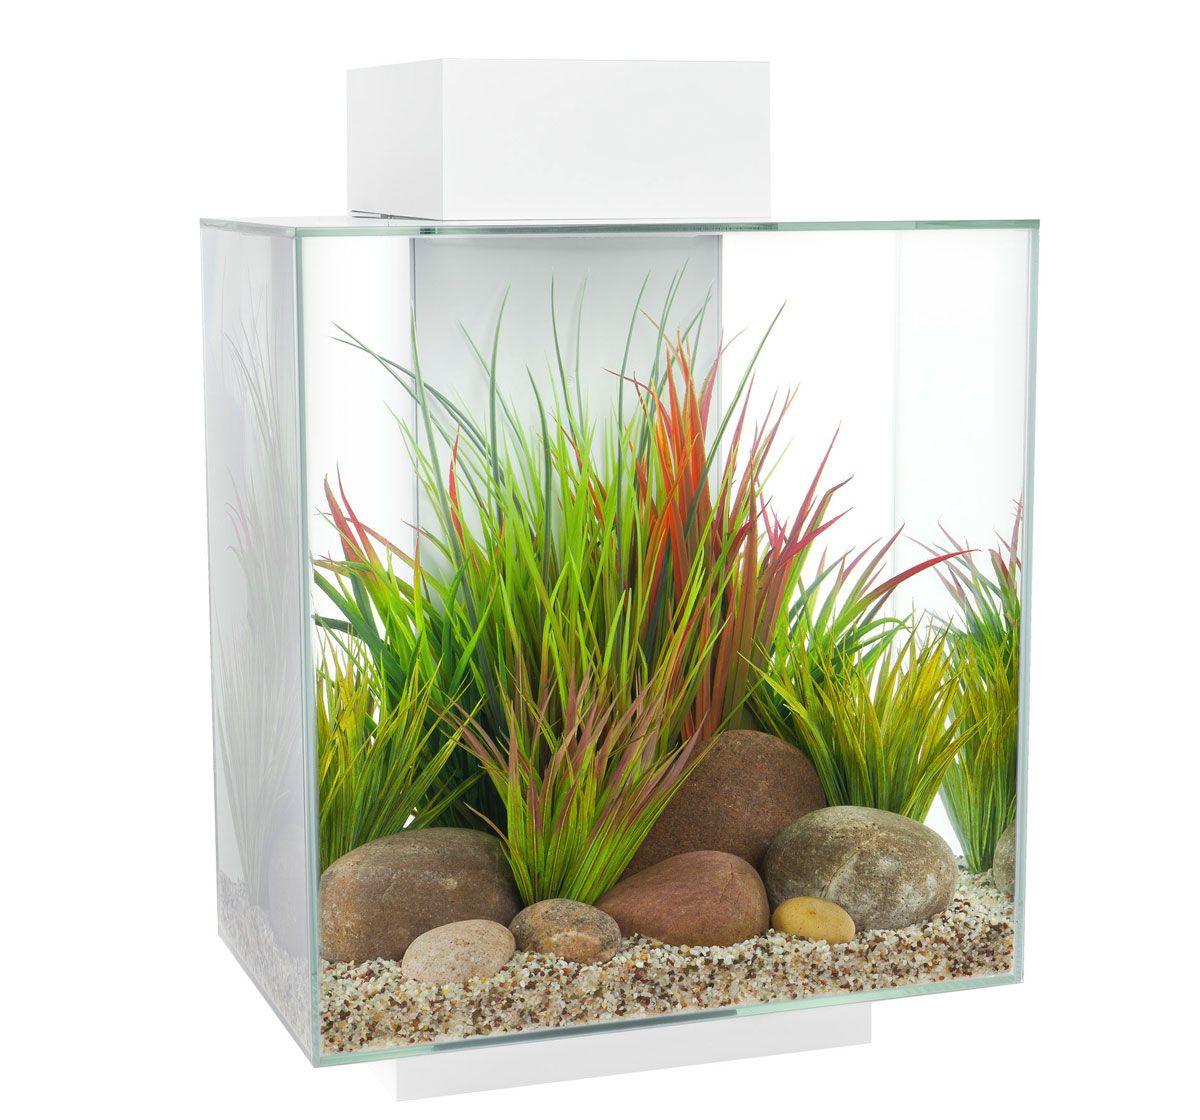 Aquarium fish tank buy online - Buy Aquarium Fish Care Products Accessories And Fish Tank Decorative Items With Best Price At Dogspot Online Shop Find Products To Maintain Aquarium For